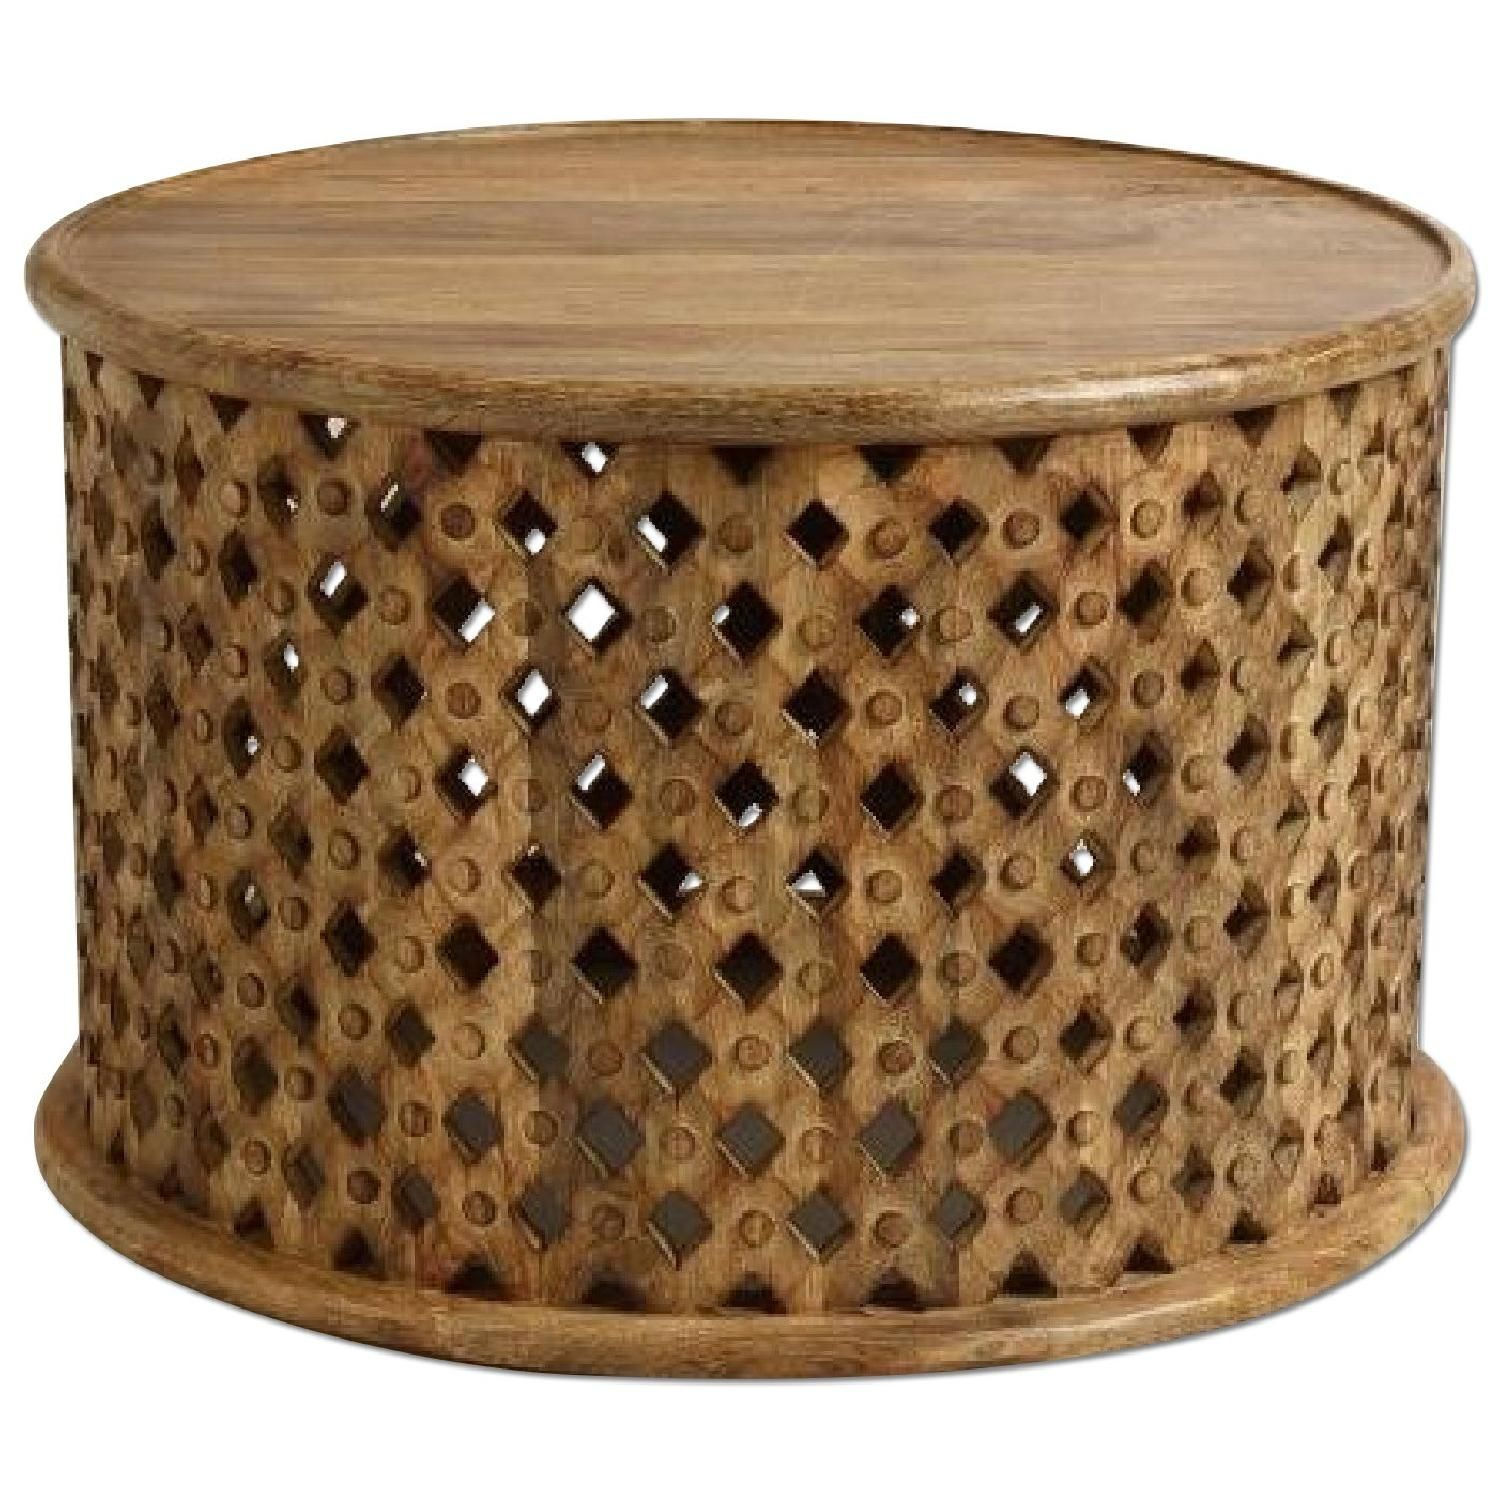 African Drum Coffee Table.This Is A Vintage African Drum Coffee Table For 500 00